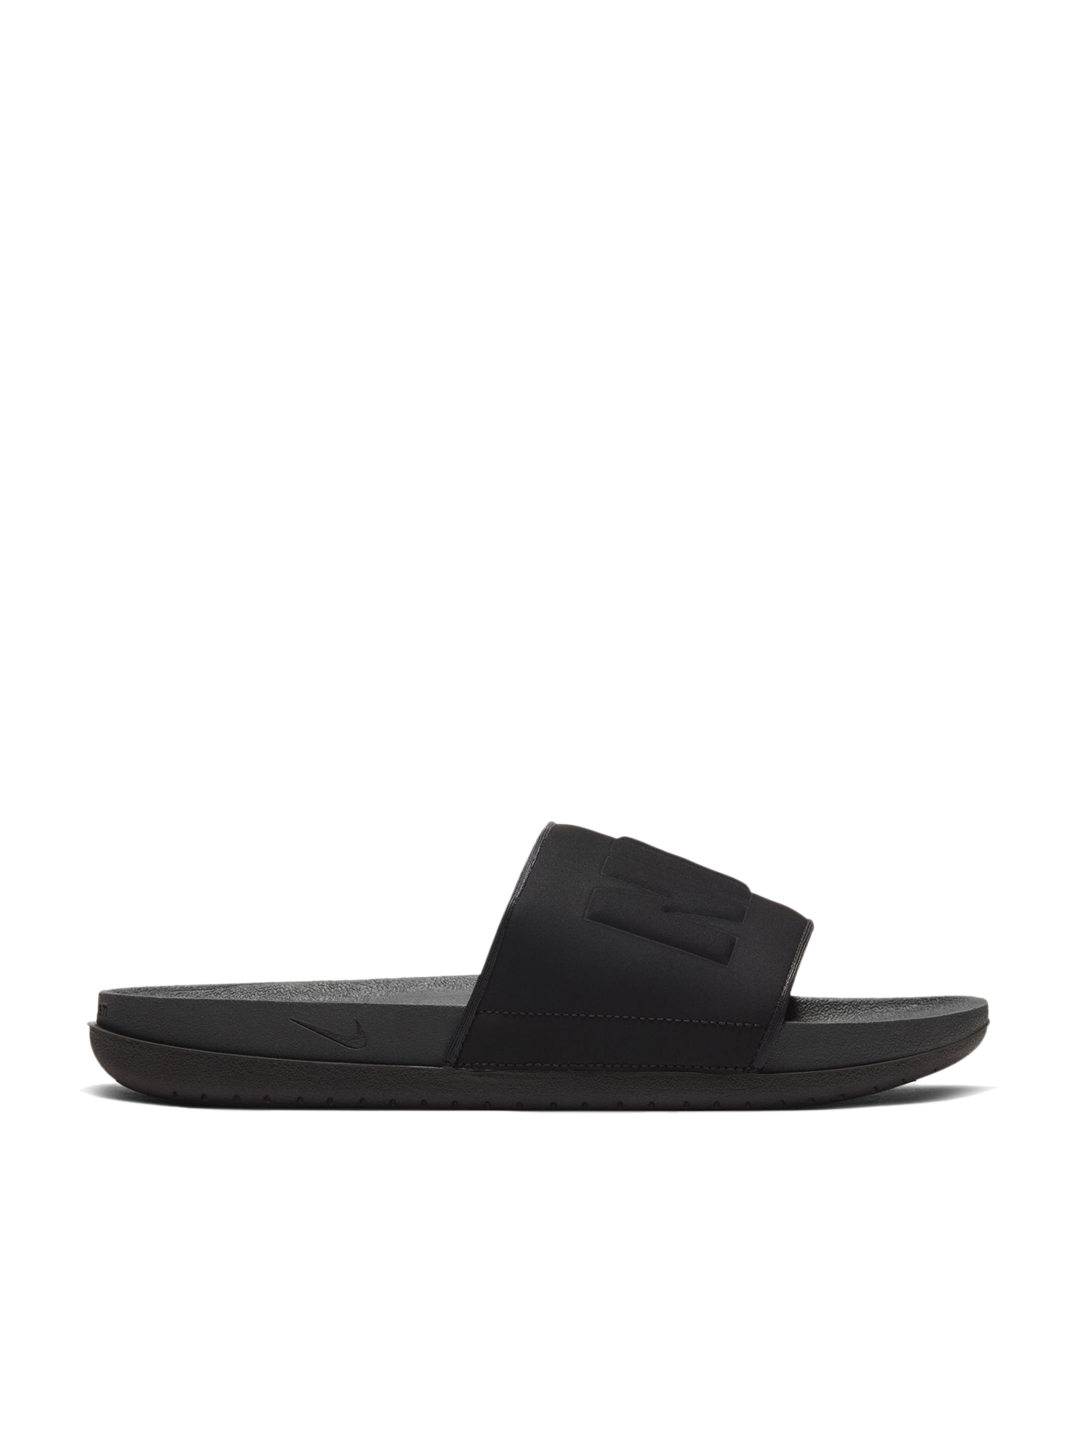 Audaz Patético Conquistar  Buy Nike Offcourt Black Casual Sandals for Men at Best Price @ Tata CLiQ